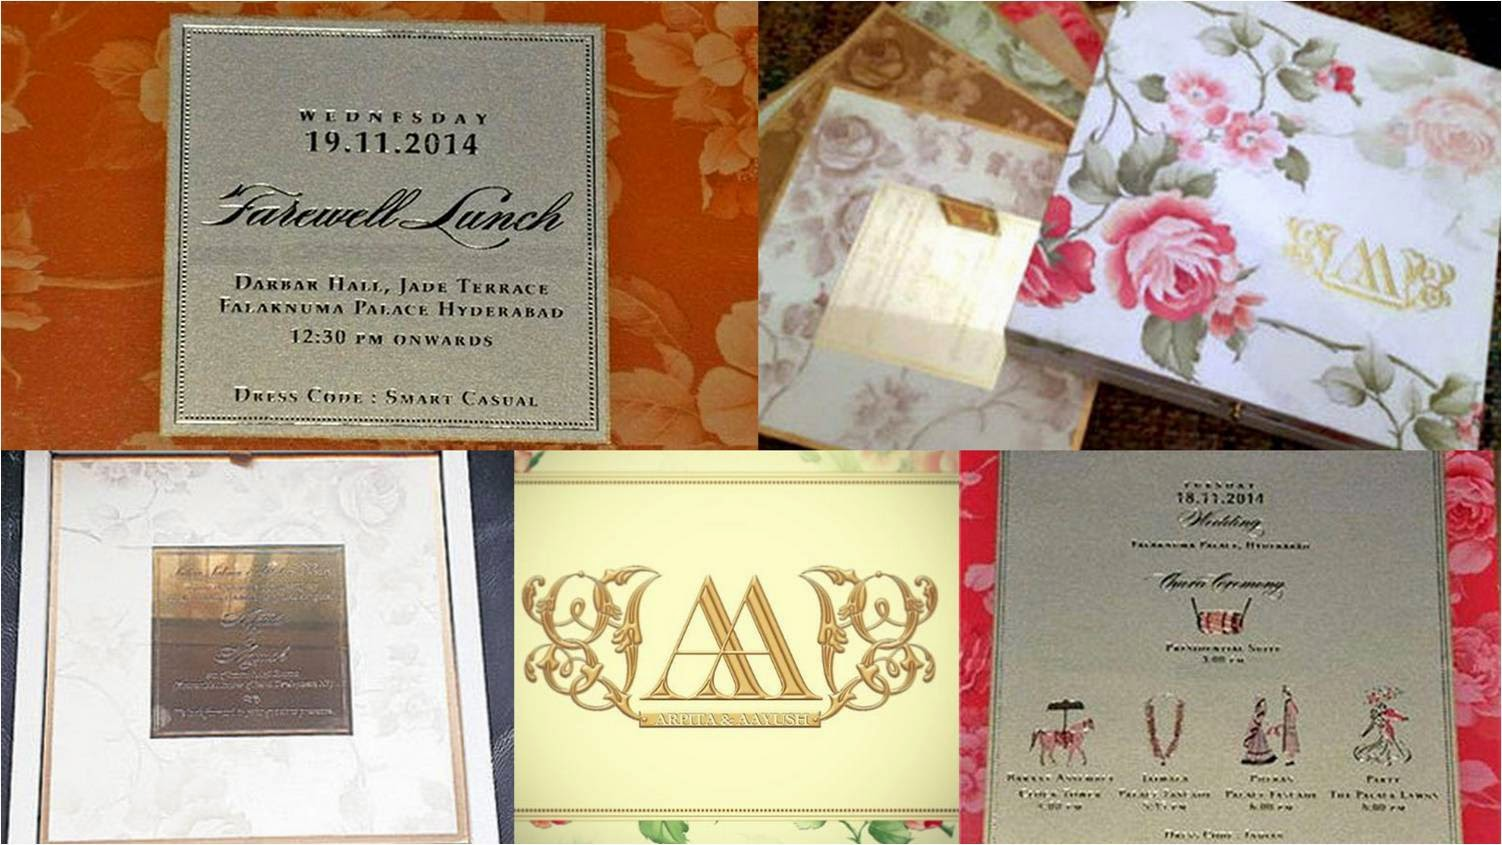 Wedding cards of Arpita and Aayush's marriage